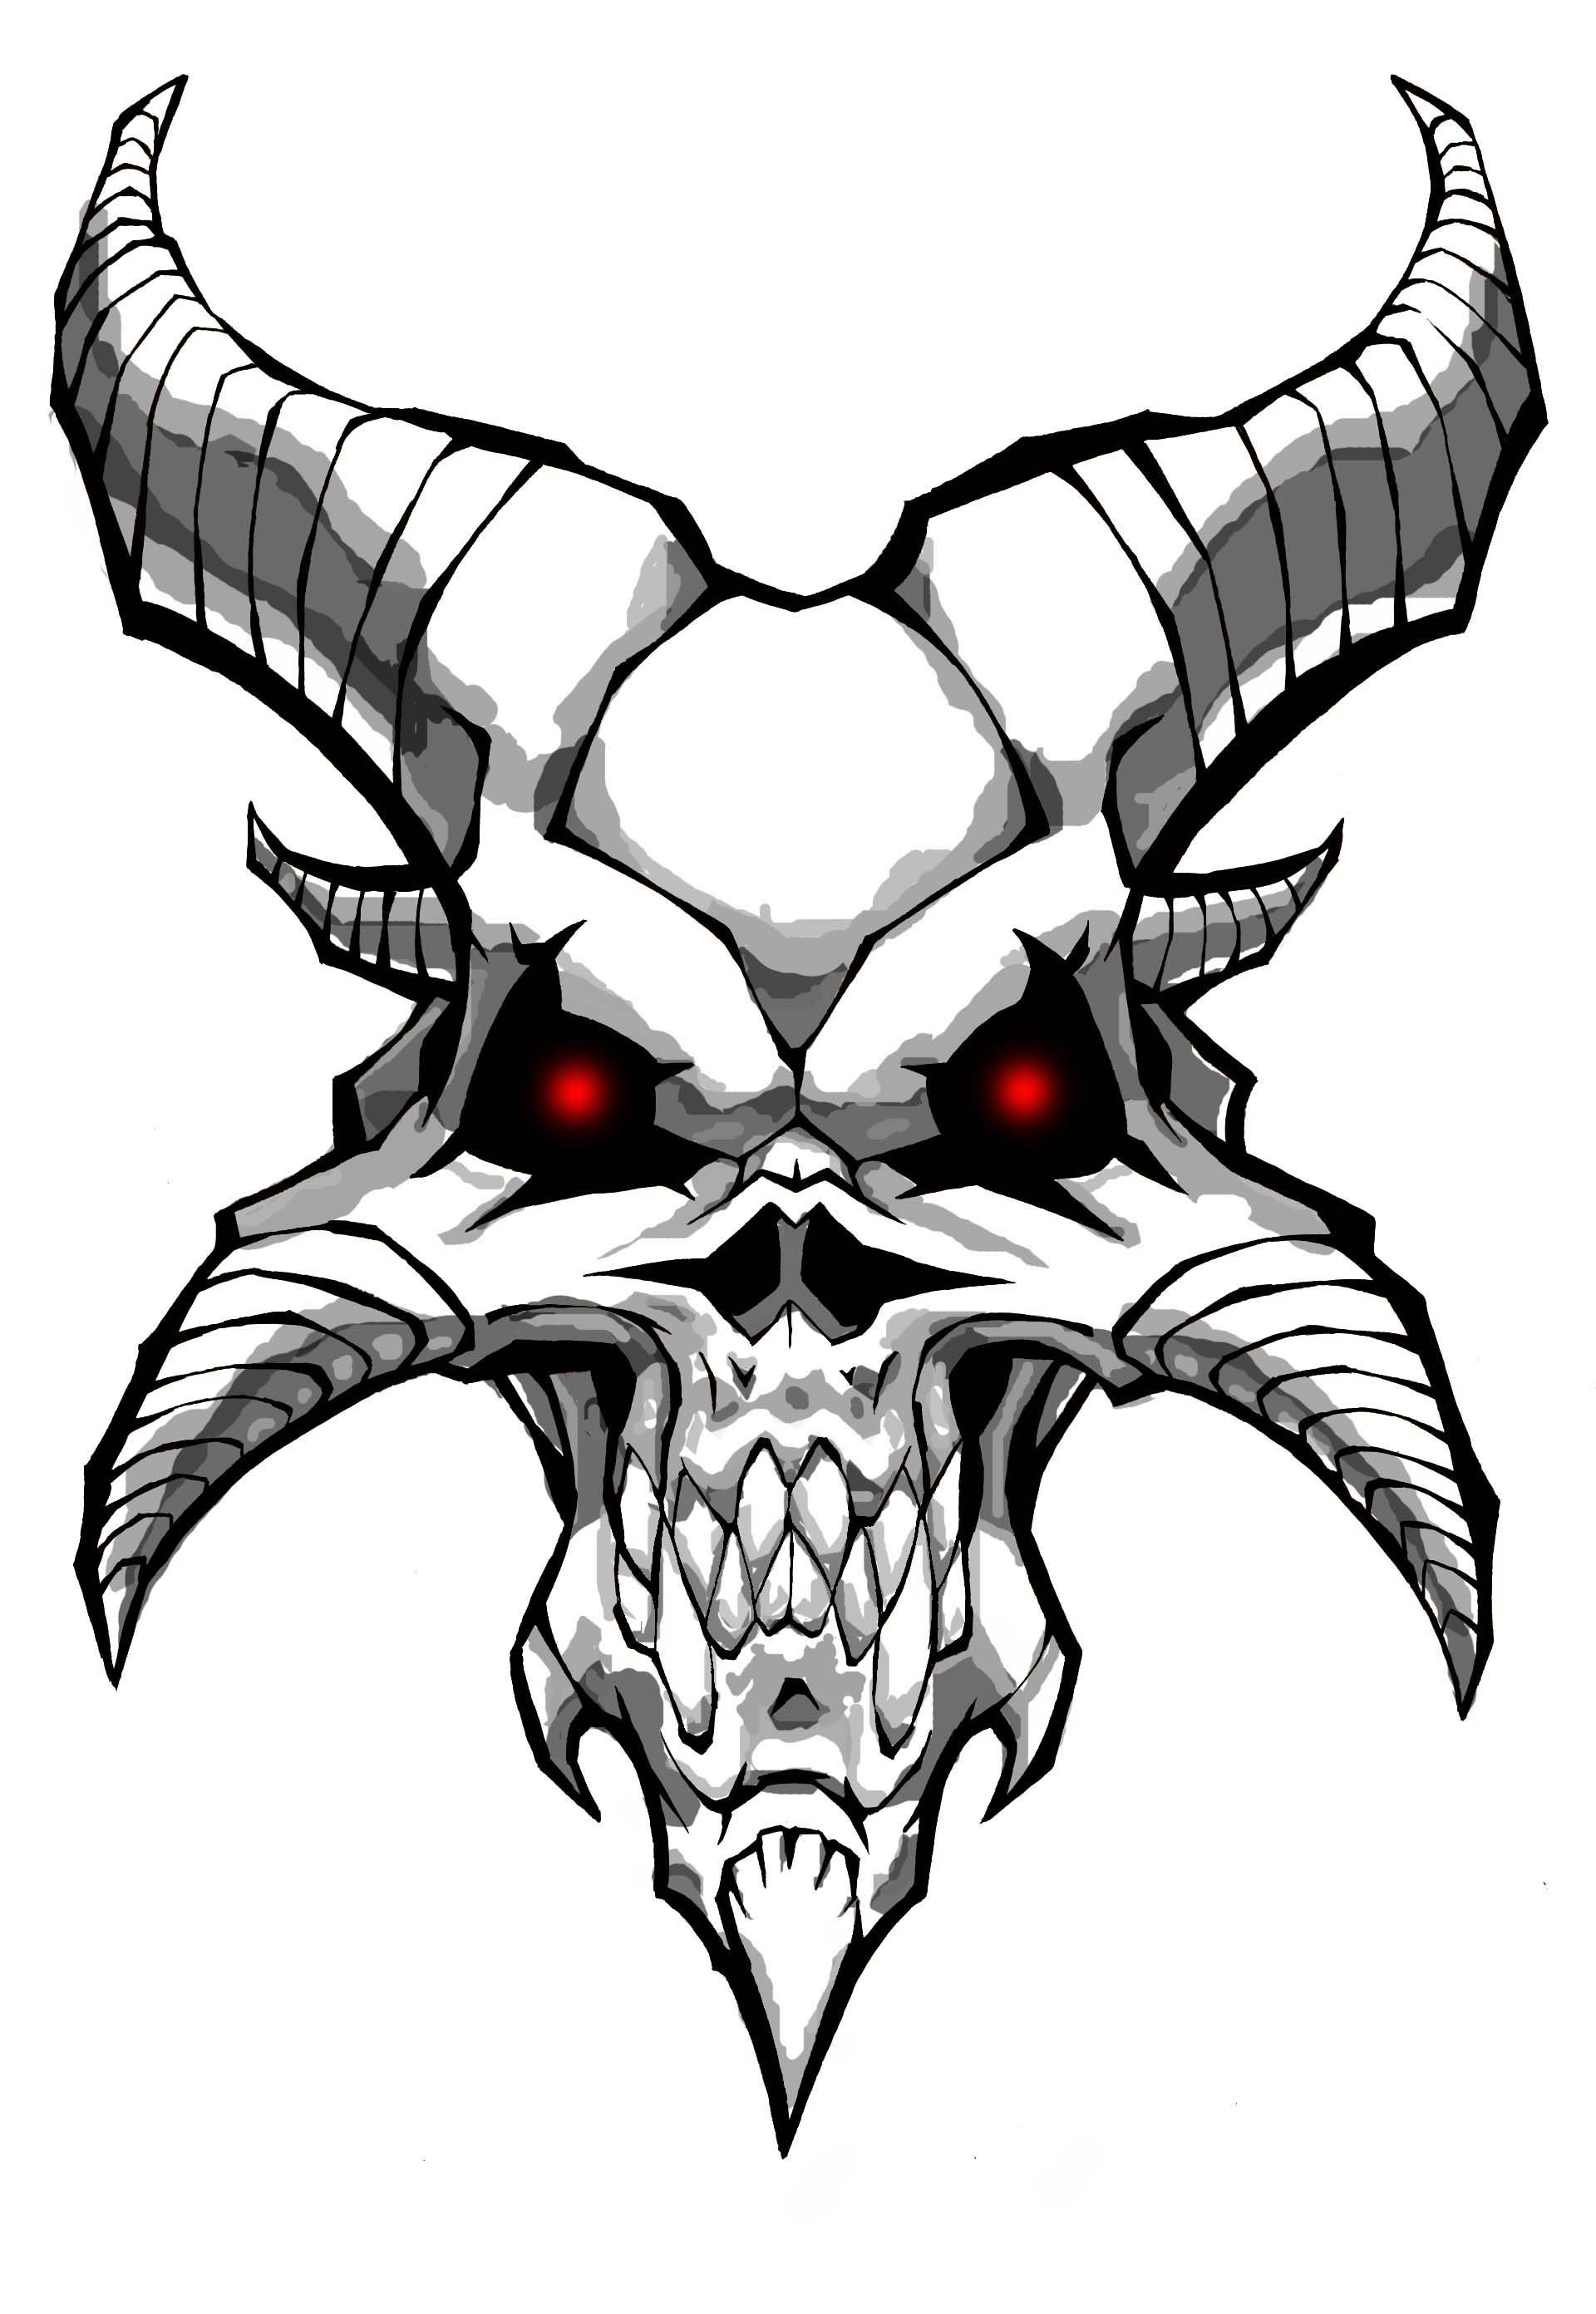 Demon Skull By Williamsquid On Deviantart In 2020 With Images